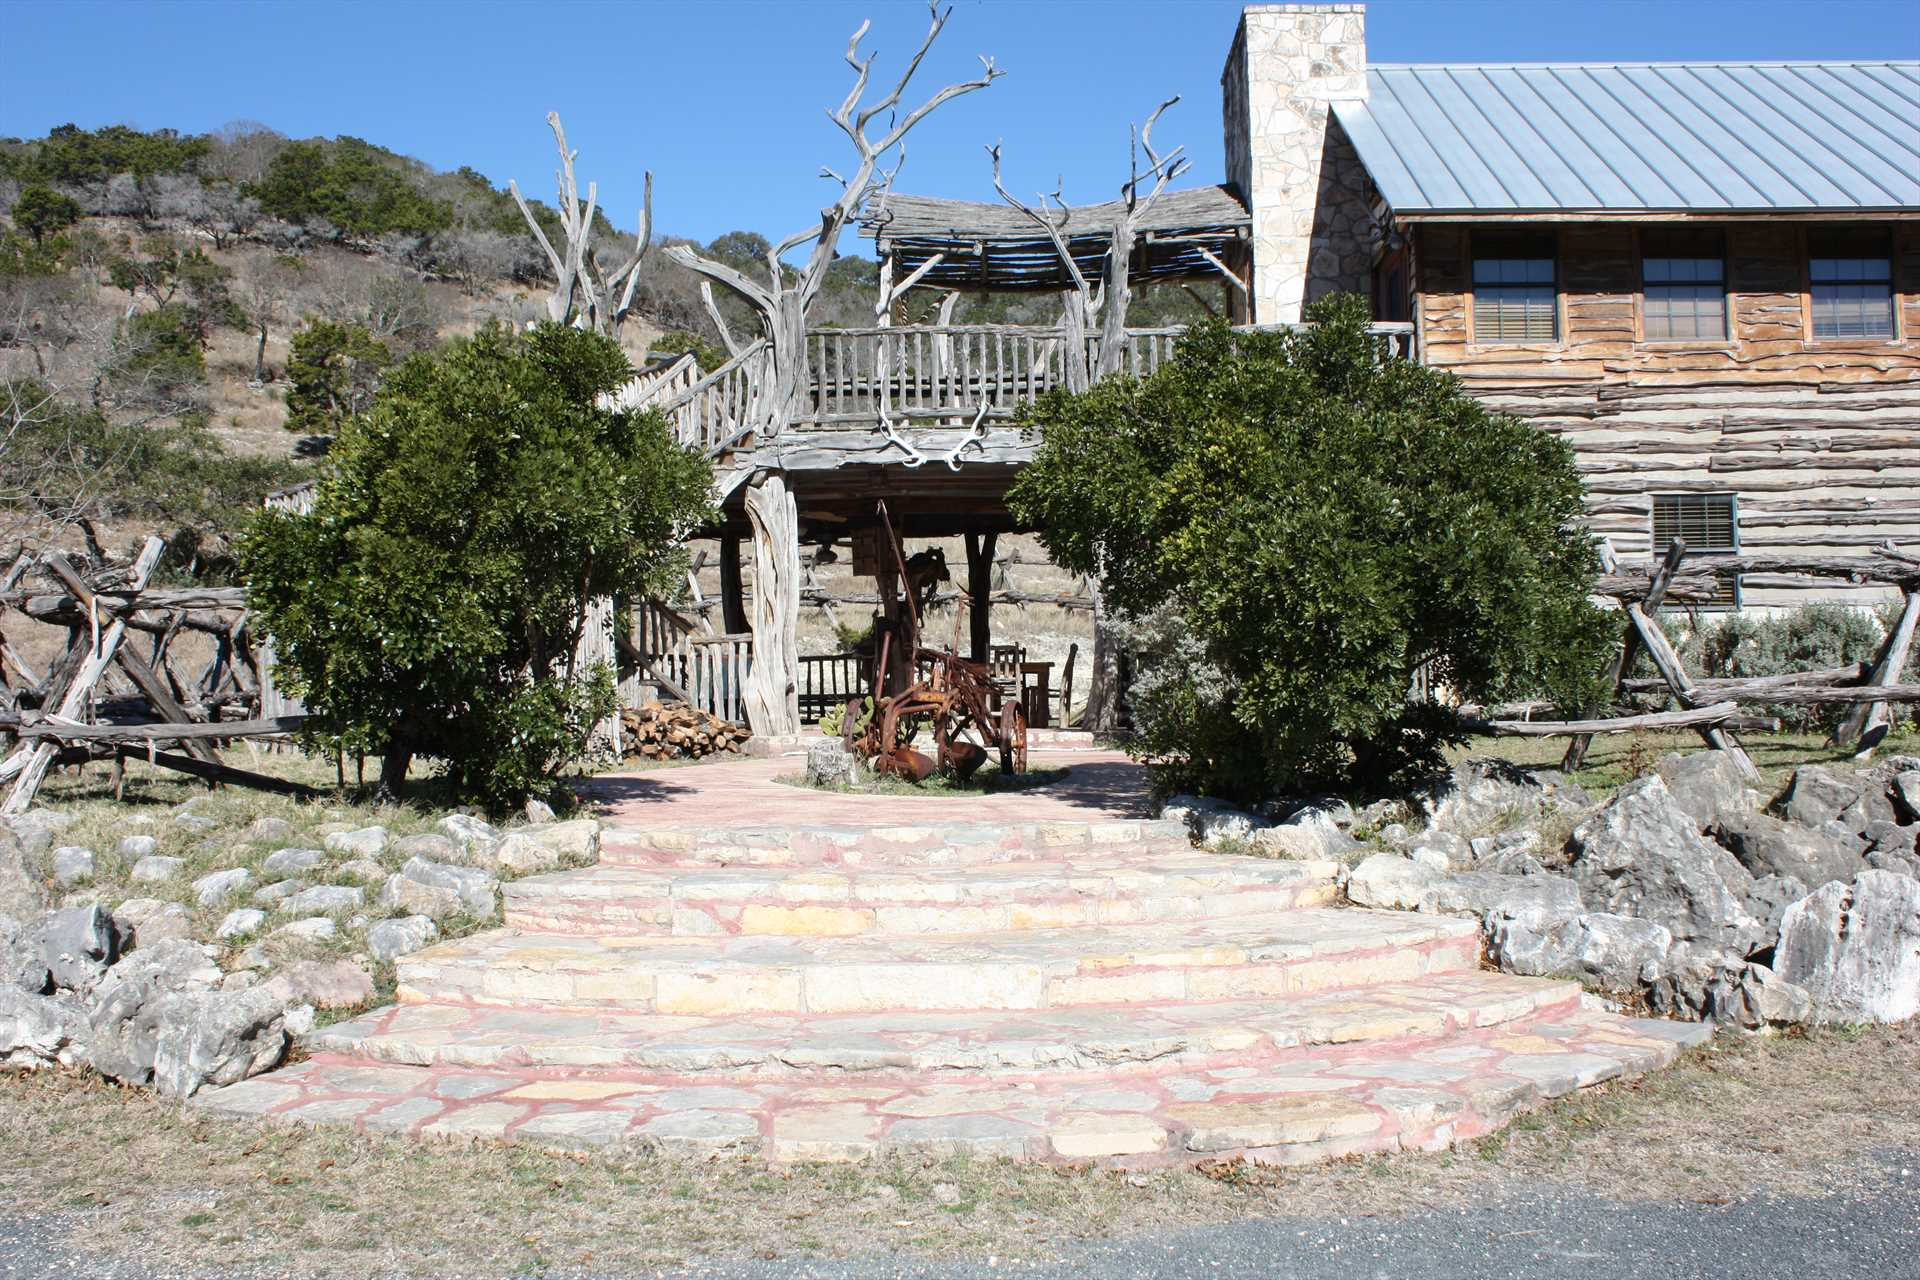 The second you approach the lodge, you'll be welcomed and treated like ranch royalty!